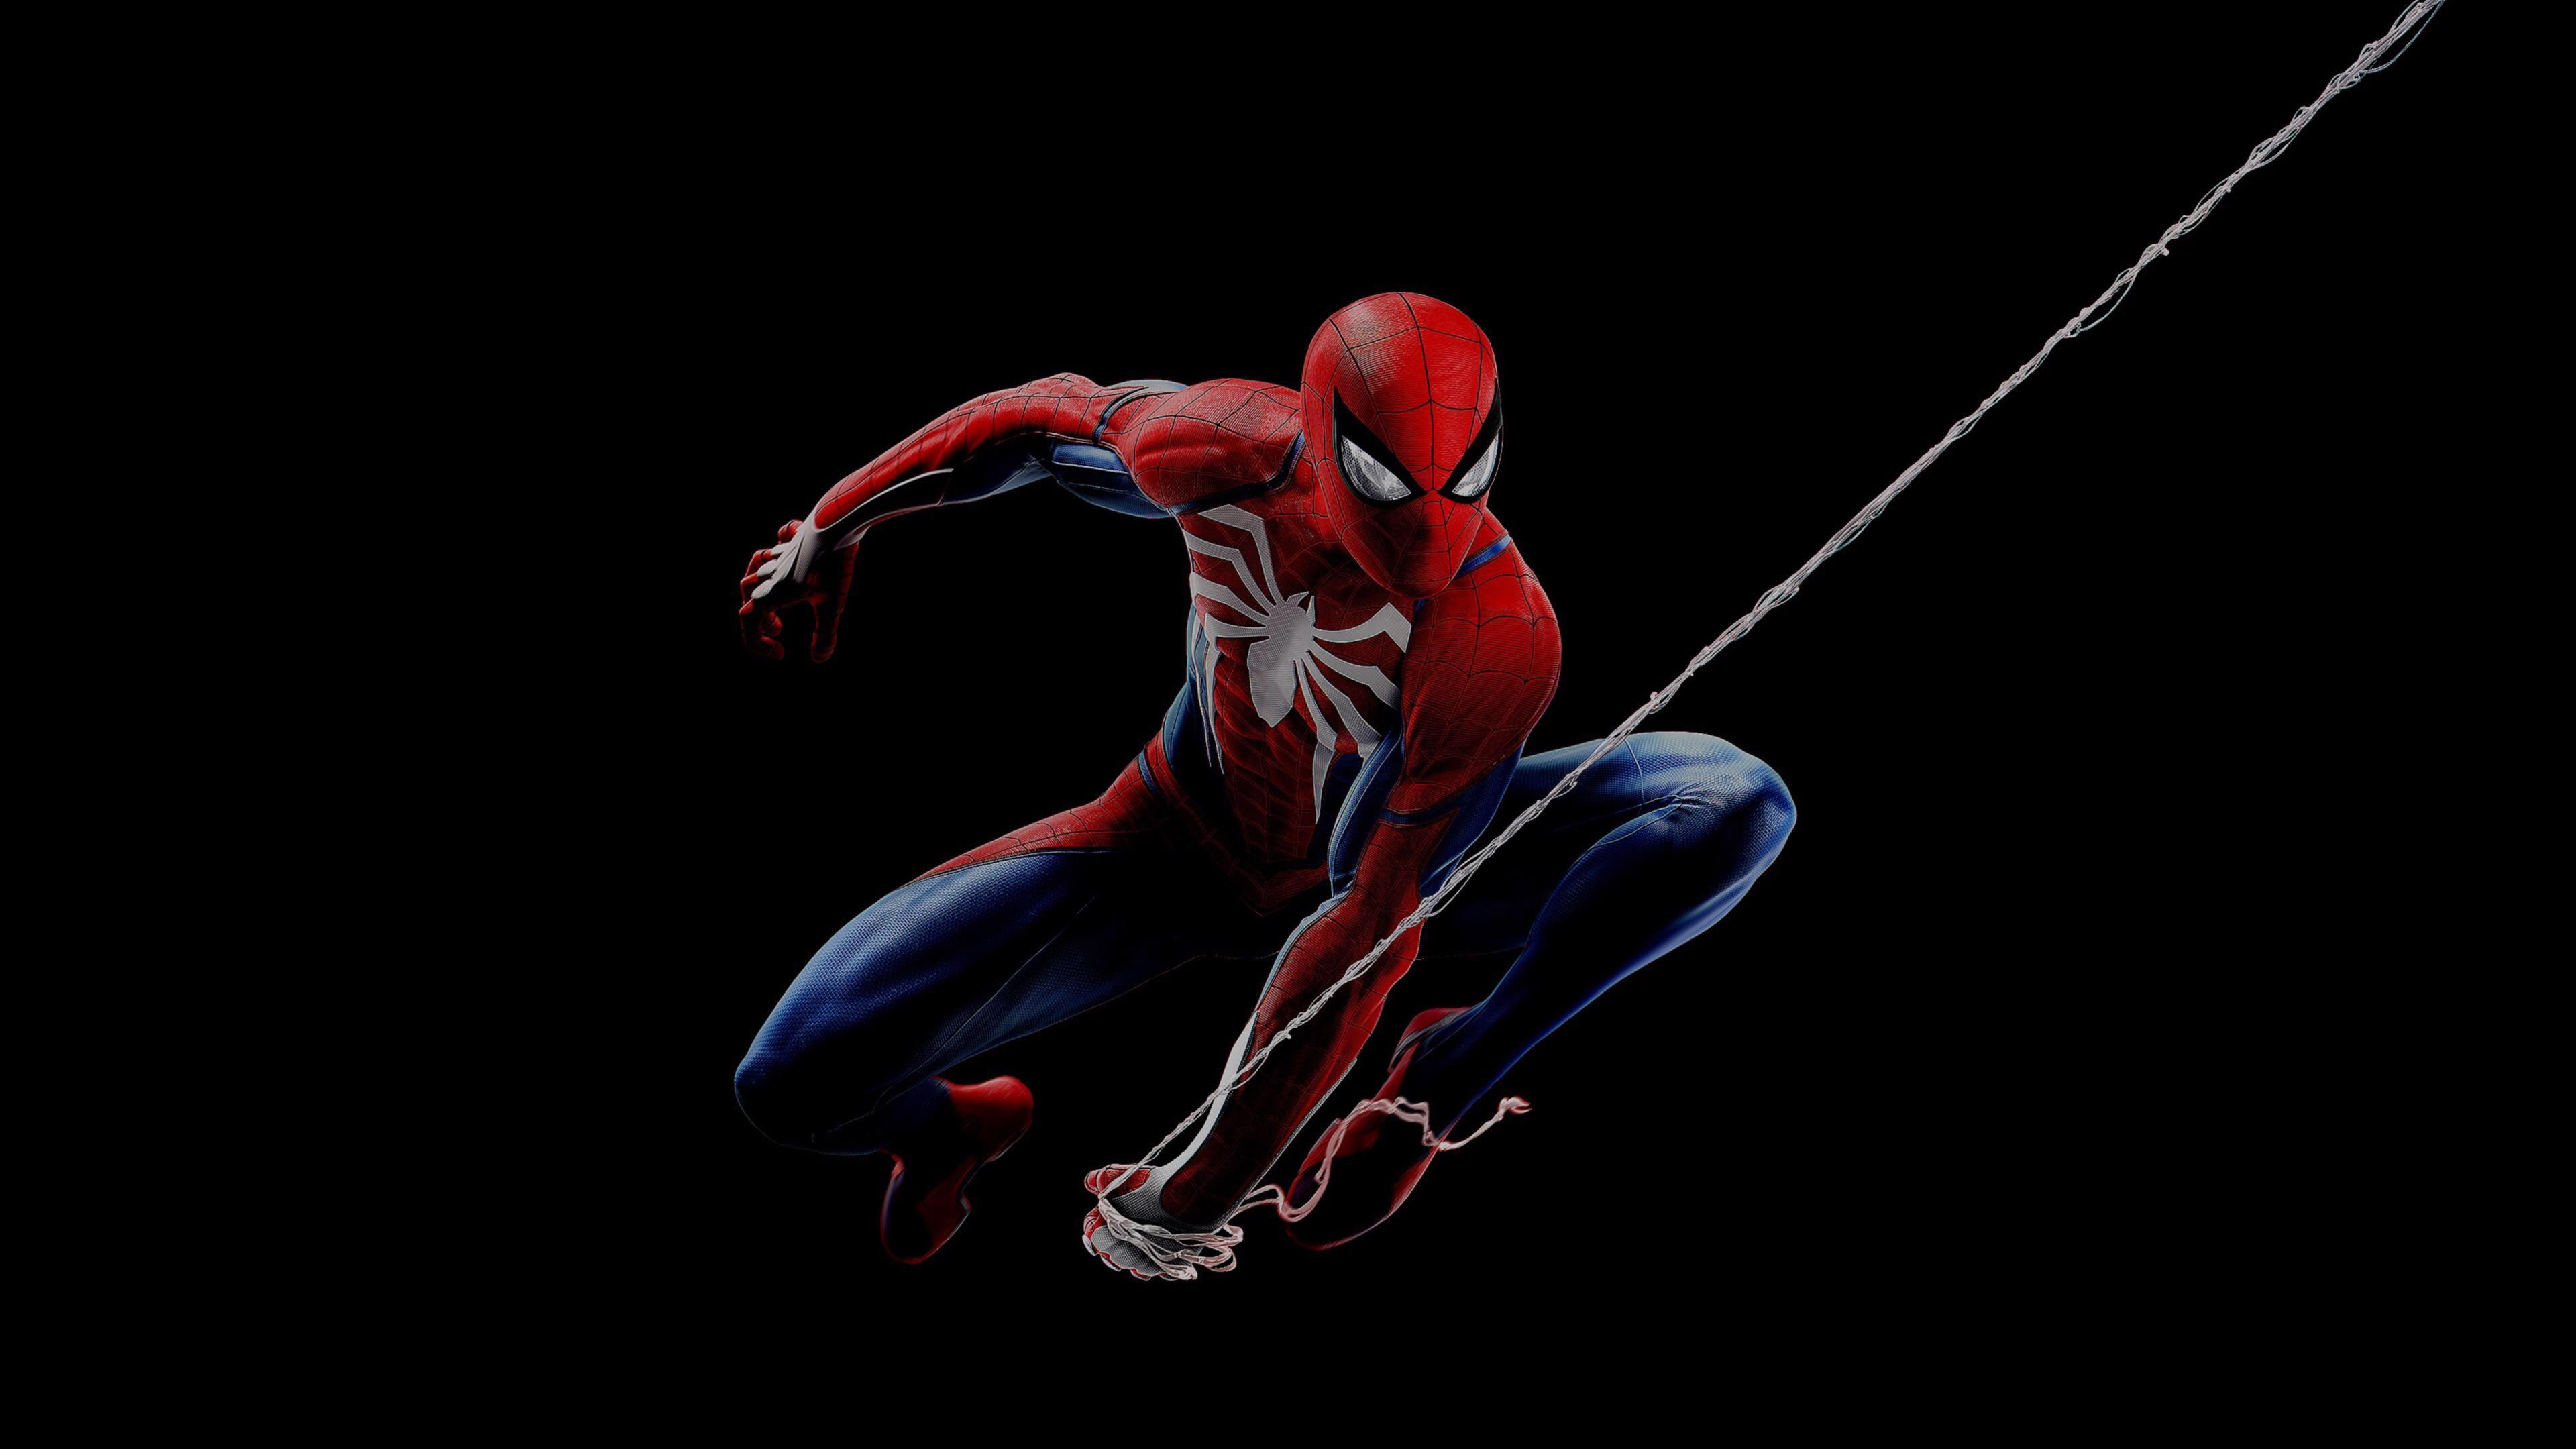 Spiderman Ps4 Pro 4k 2018 Hd Games 4k Wallpapers Images